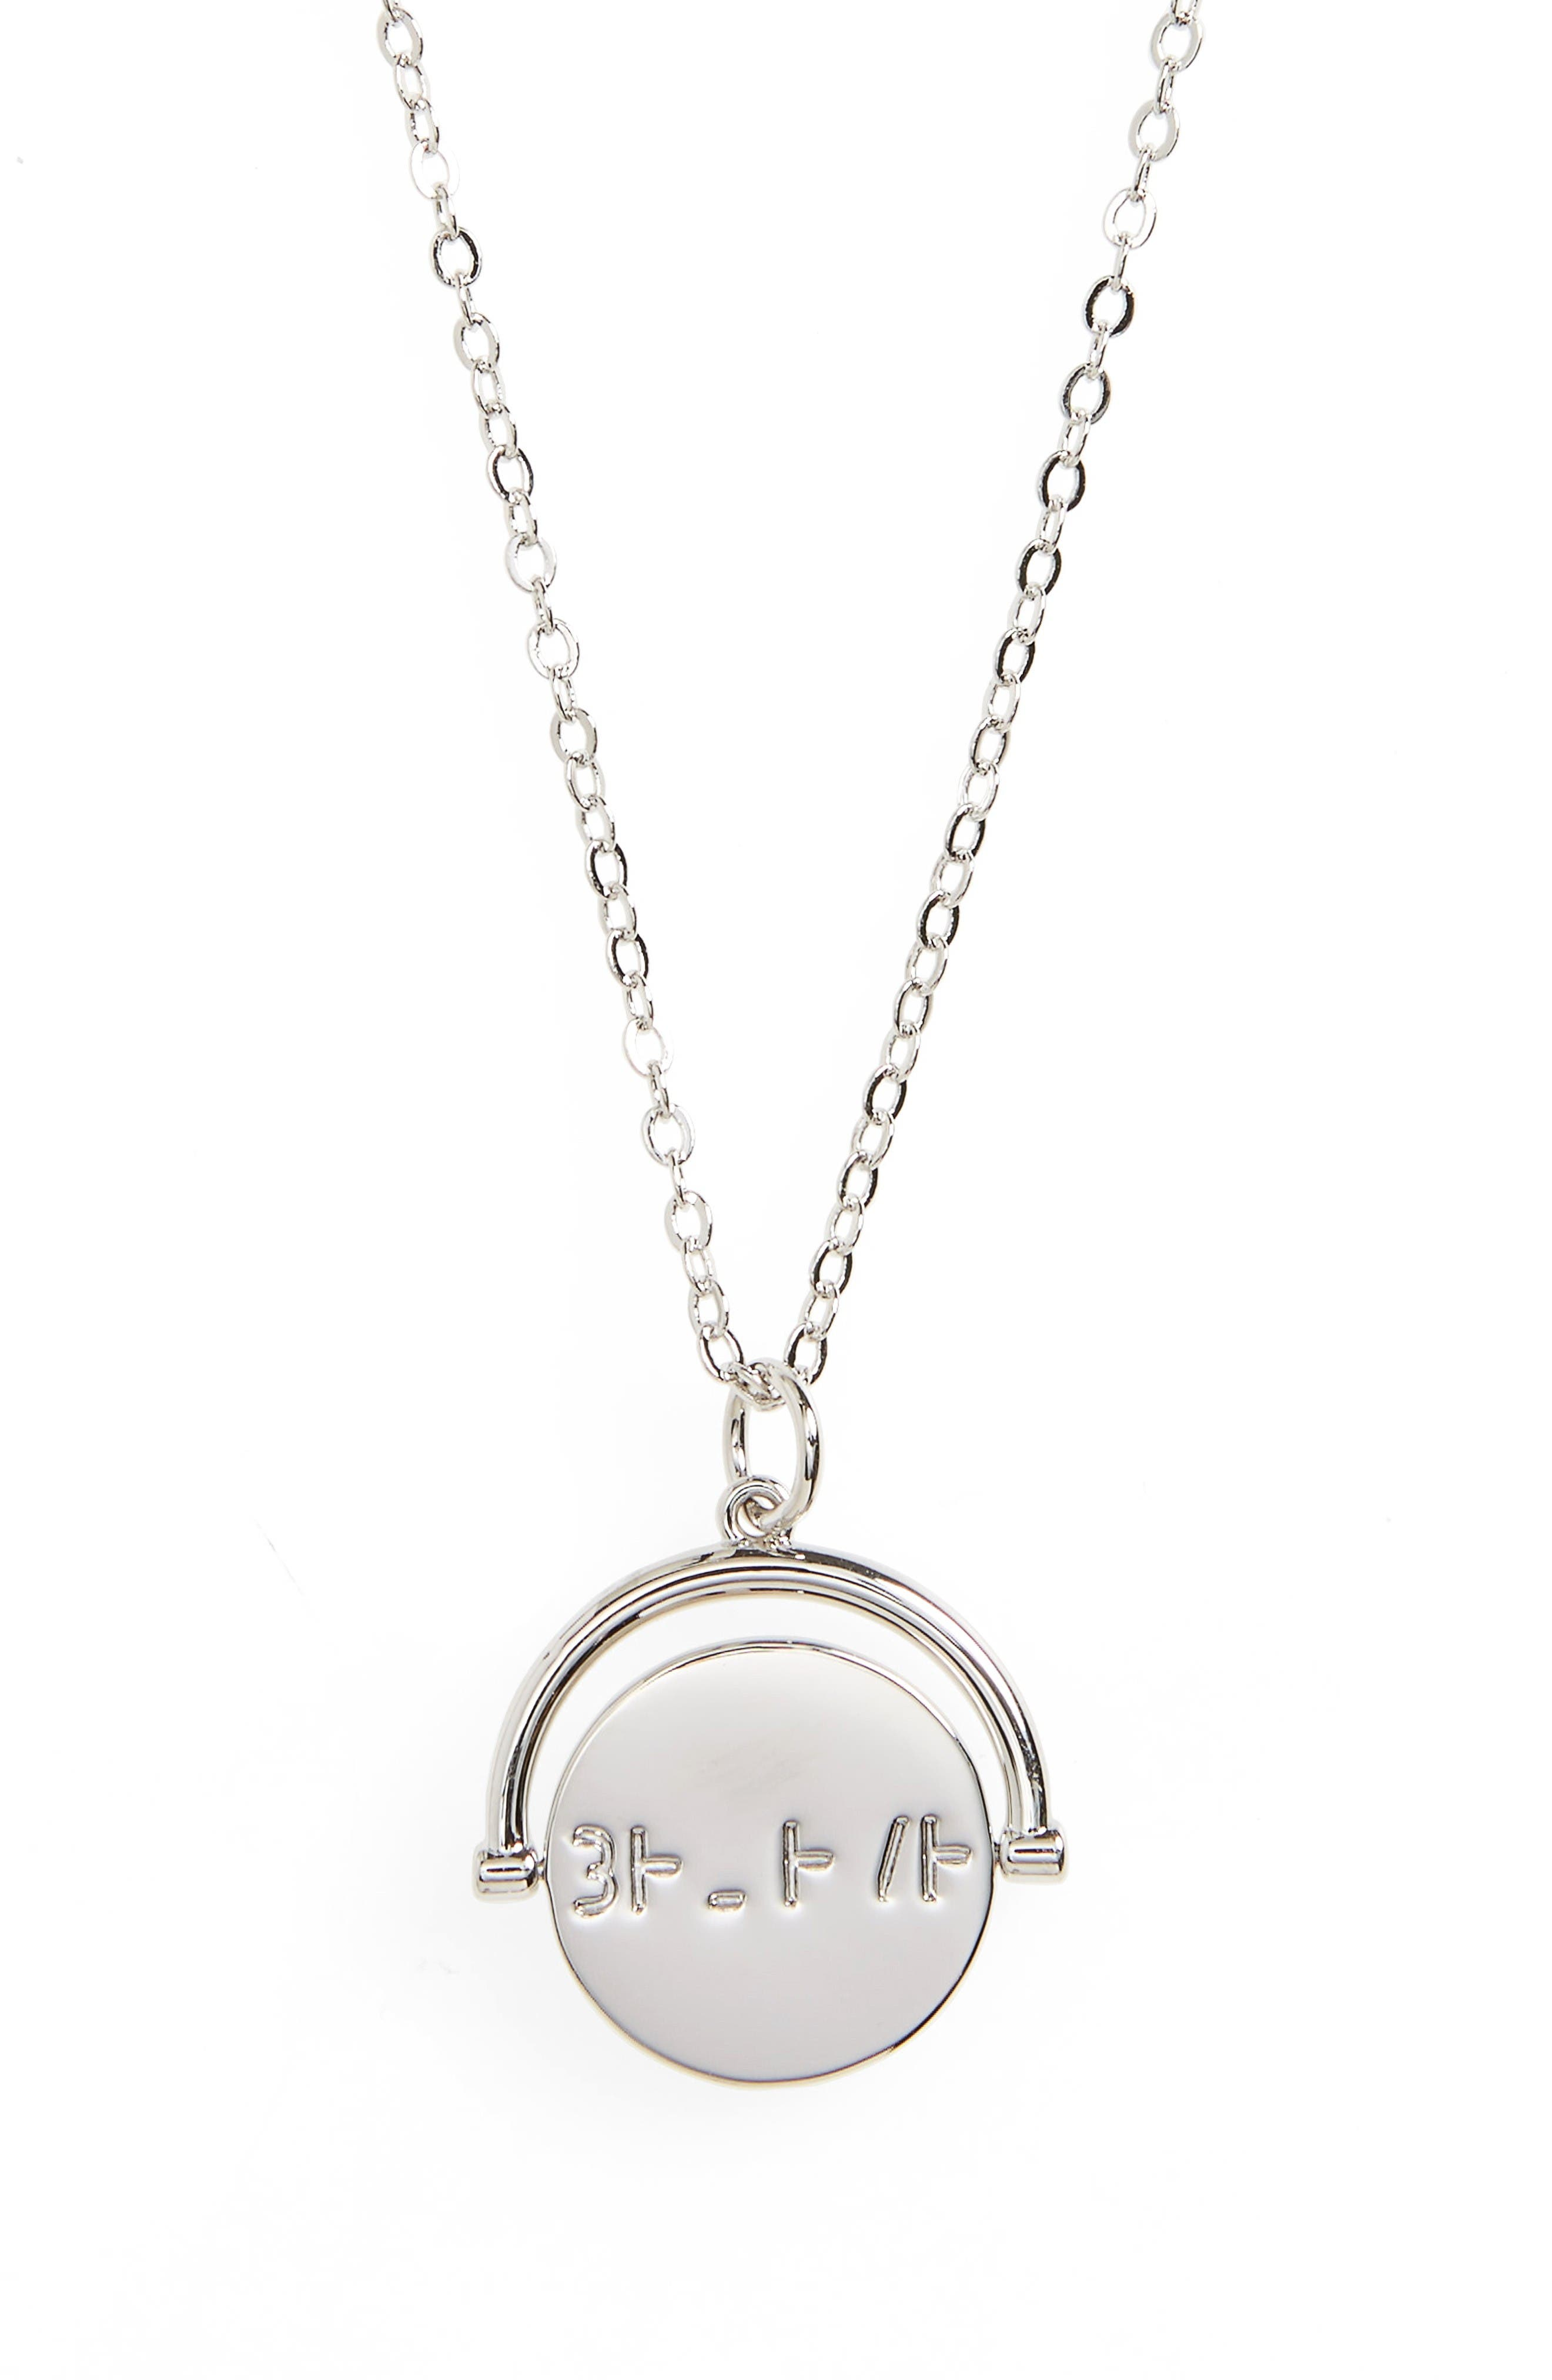 Main Image - lulu dk Believe Love Code Charm Necklace